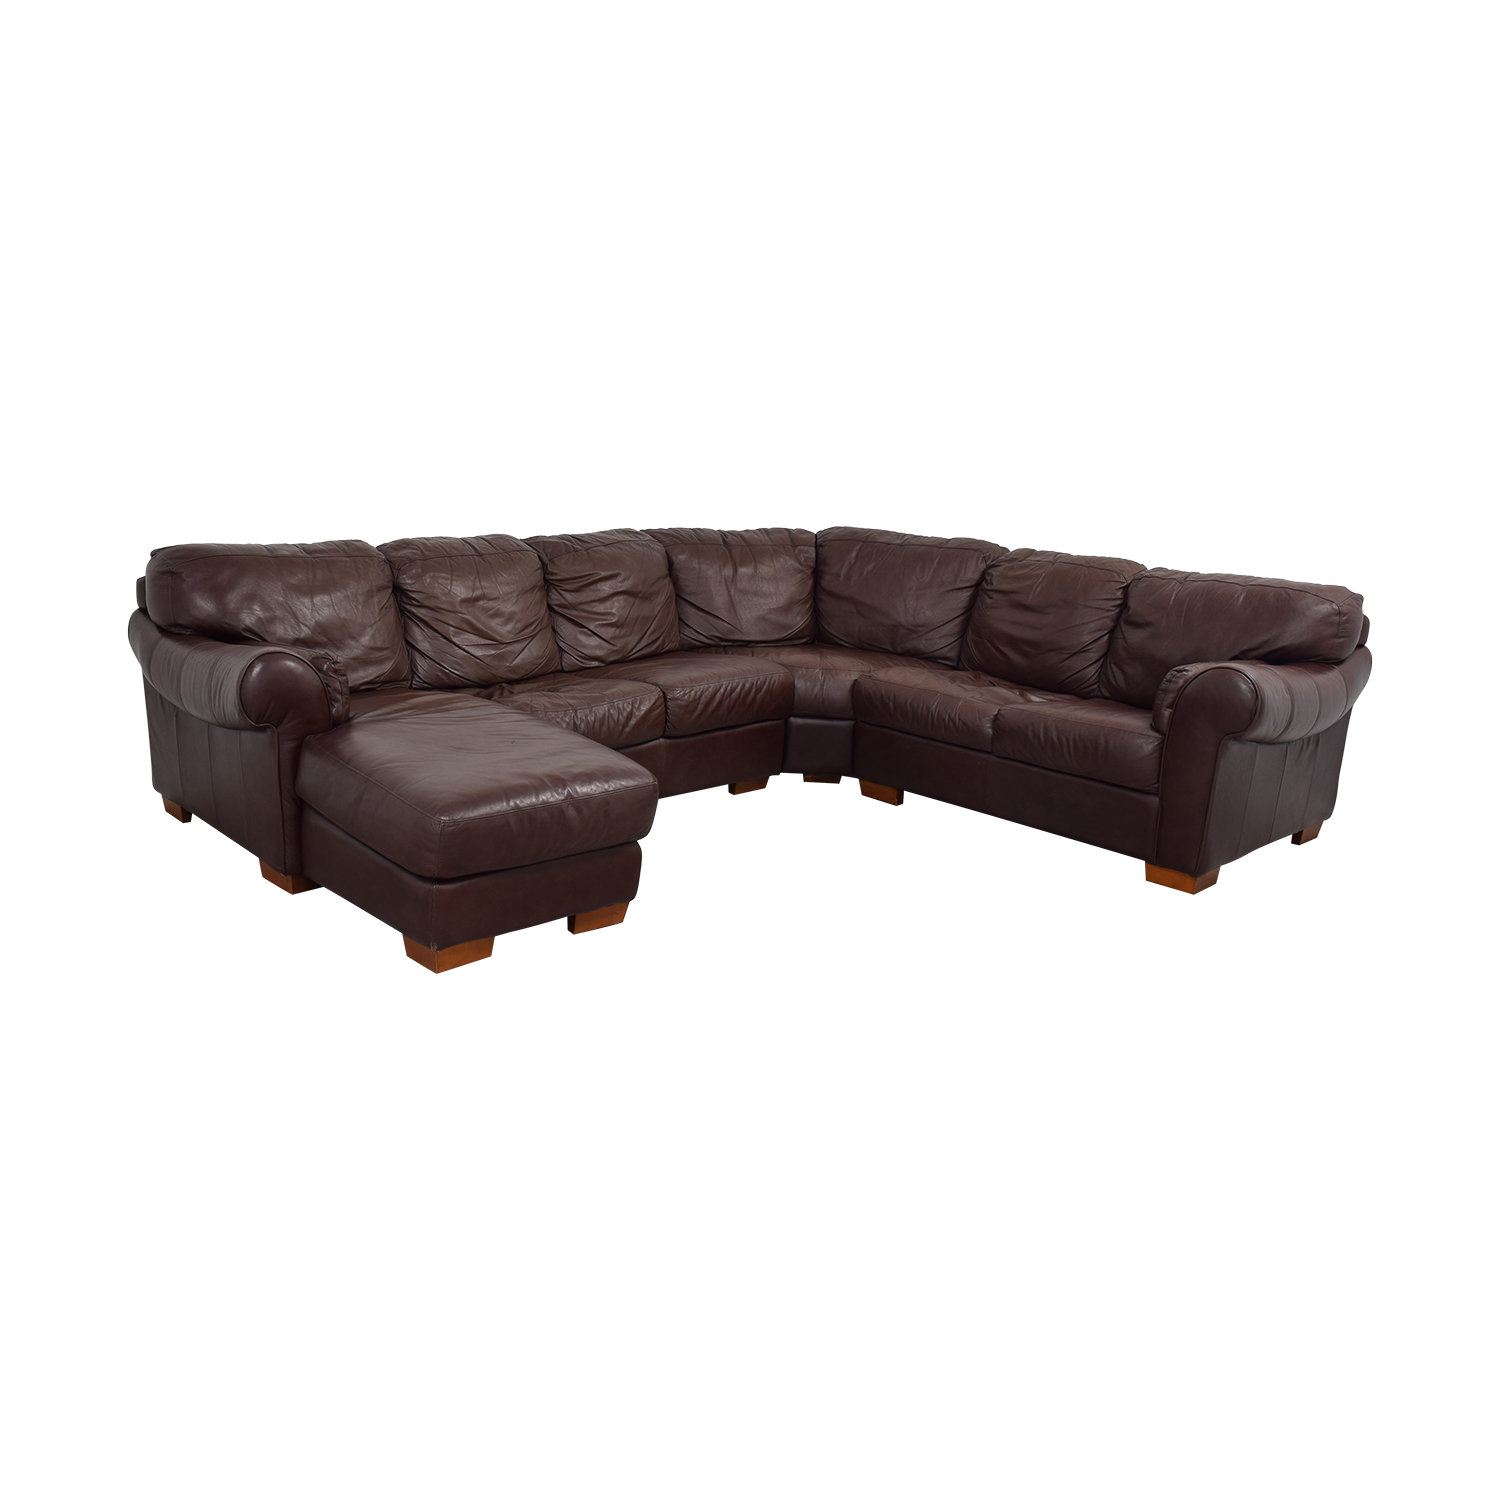 Chateau D'Ax Divani Brown Leather L Sectional Couch with Chaise sale